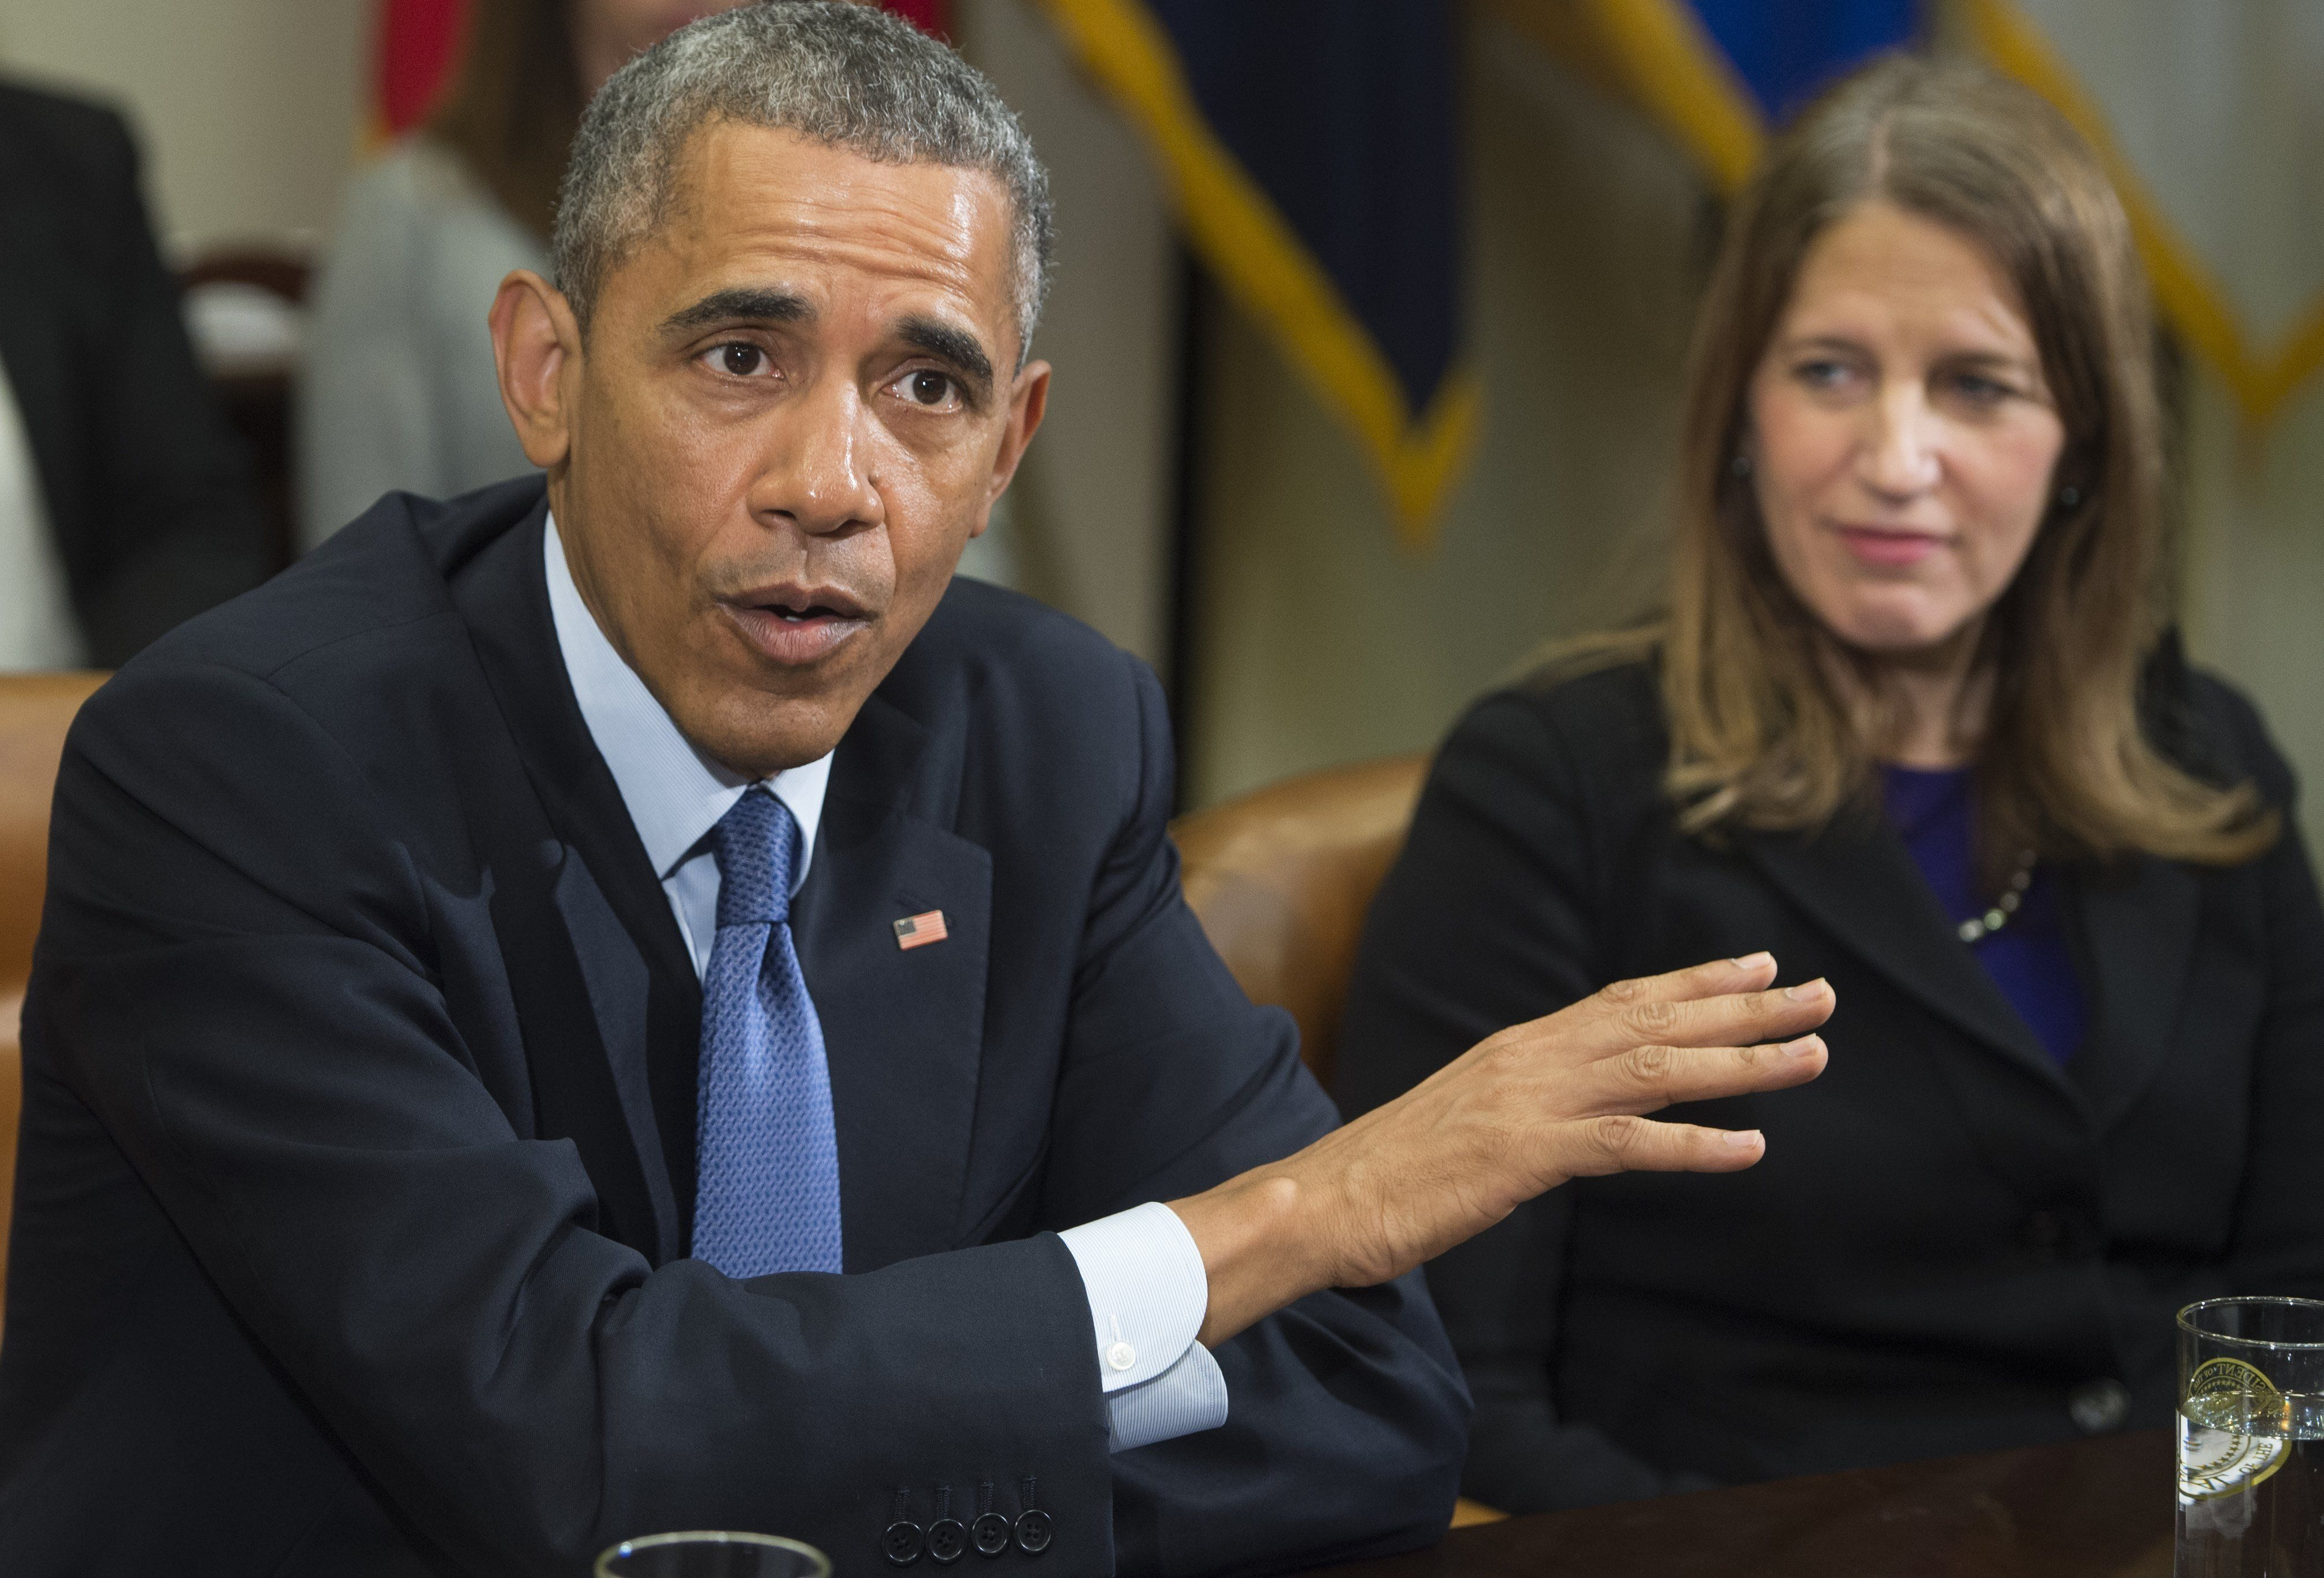 Health and Human Services Secretary Sylvia Burwell made a big announcement Thursday on opioid treatment.